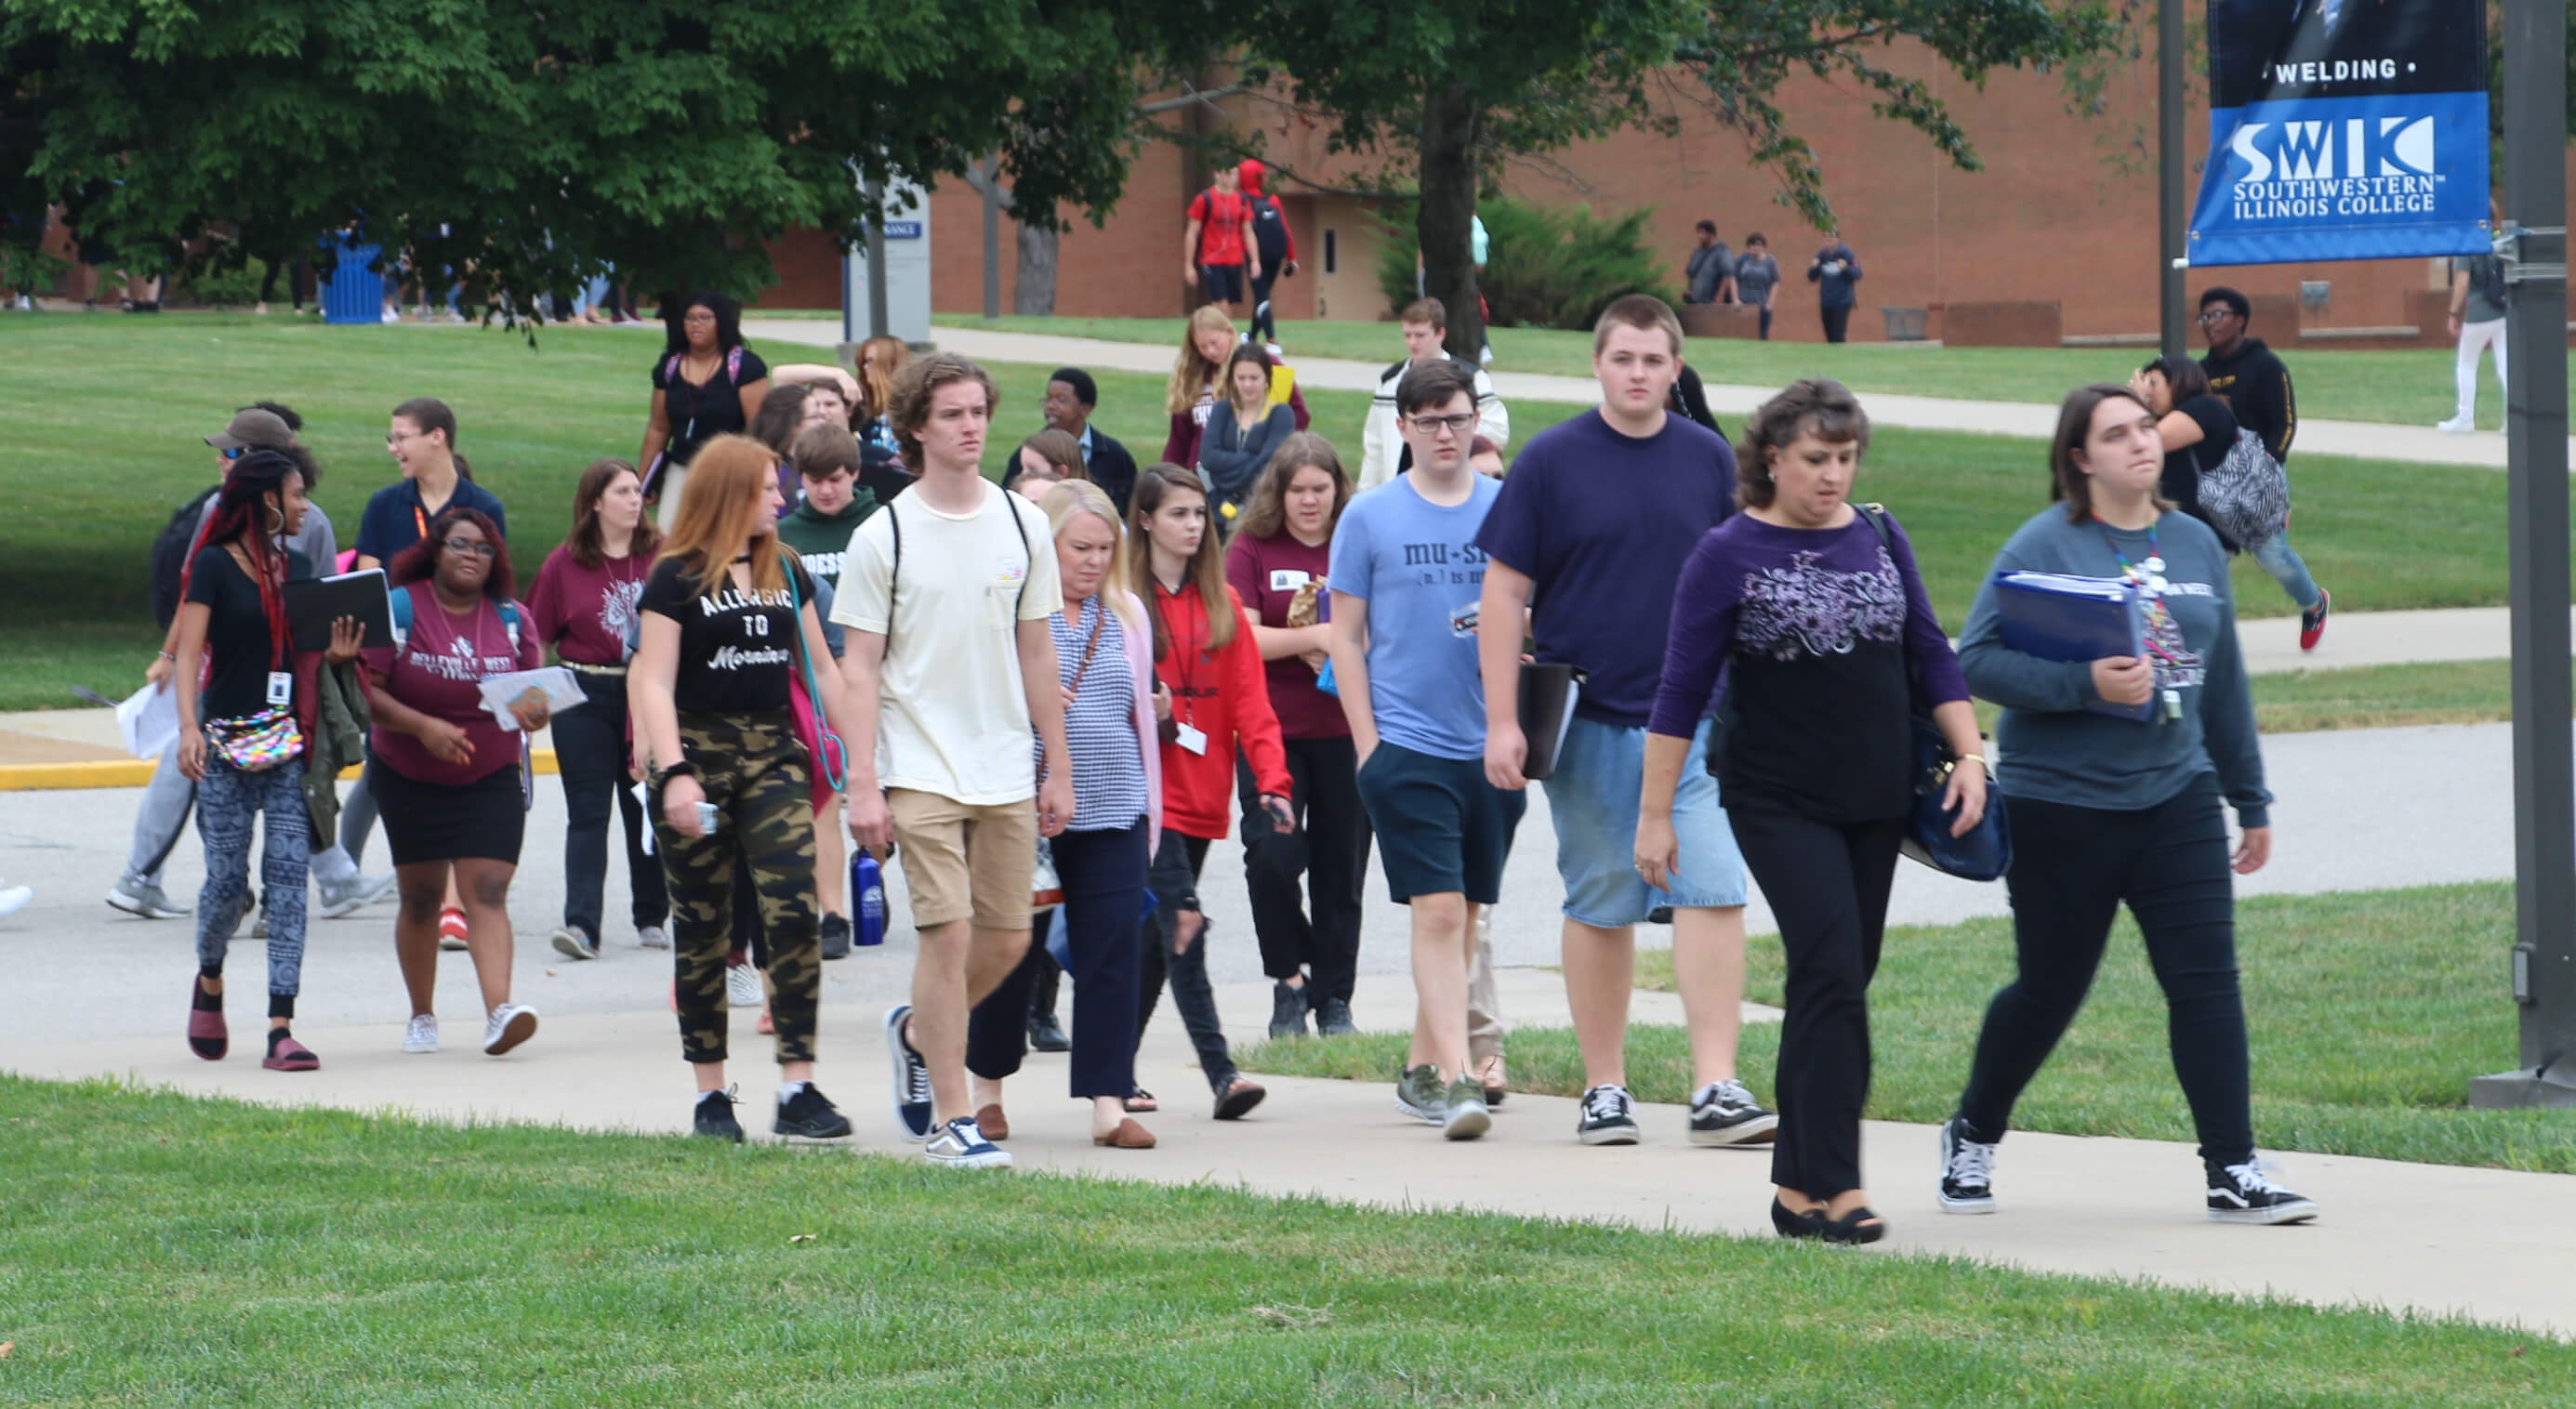 New Student Orientation Southwestern Illinois College